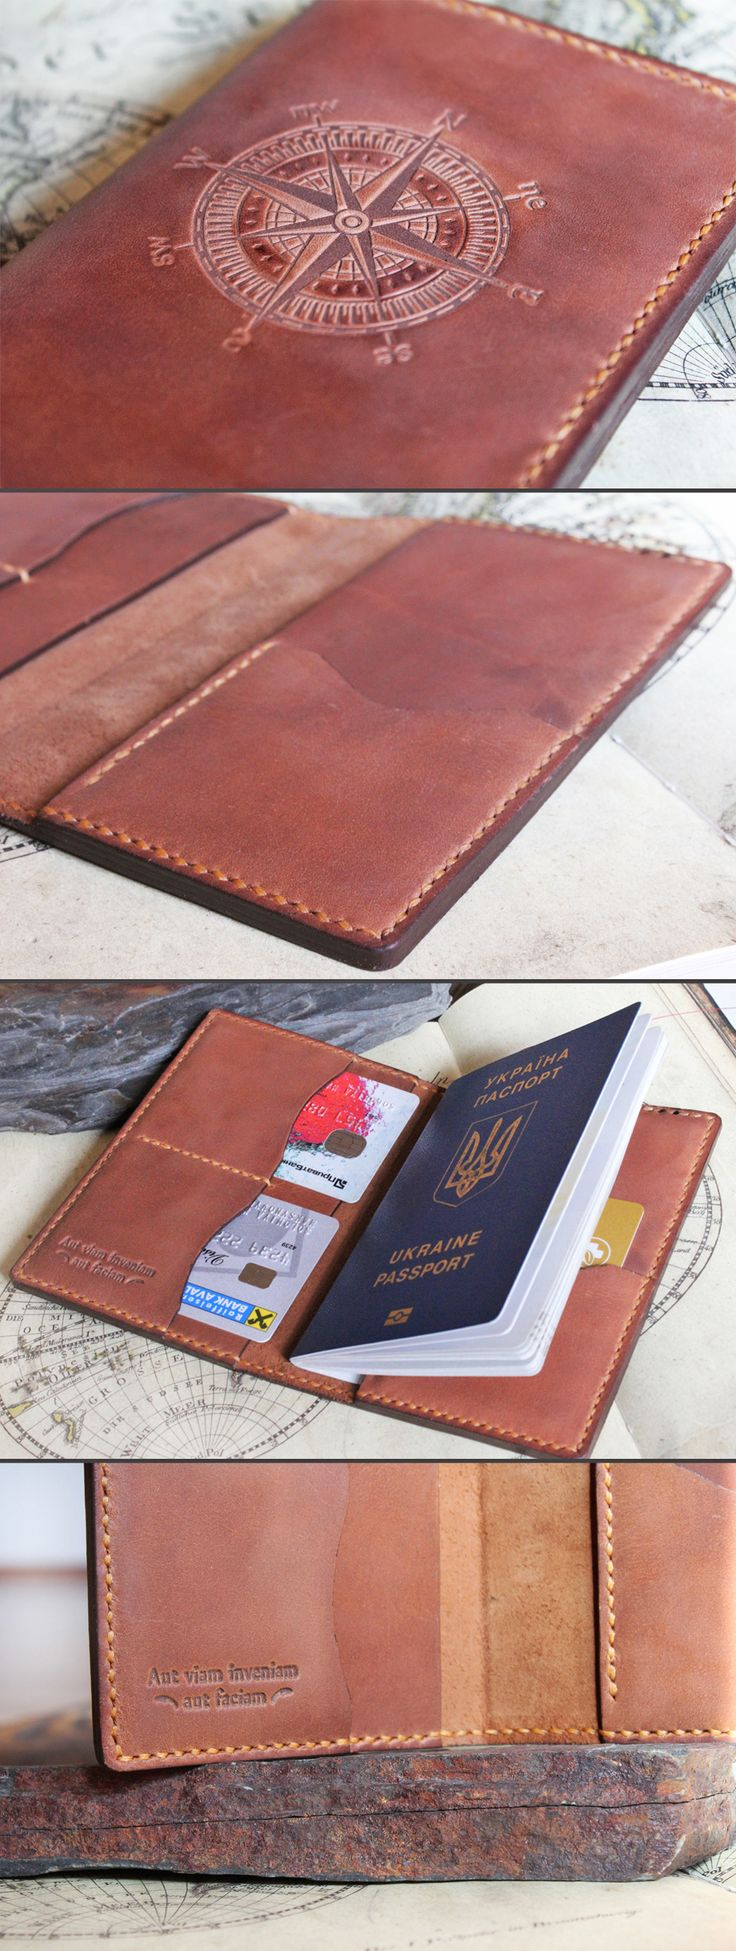 """The passport wallet is embossed with nice motivational quote inside. Keep your document safe in unique passport cover. This travel wallet is trully original gift idea for him! This passport holder is made of brown leather with slight vintage effect. """"Aut viam inveniam aut faciam"""" meen """"I shall either find a way or make one."""" The phrase has been attributed to Hannibal, when his generals told him it was impossible to cross the Alps by elephant. Mens gift, gift for him."""